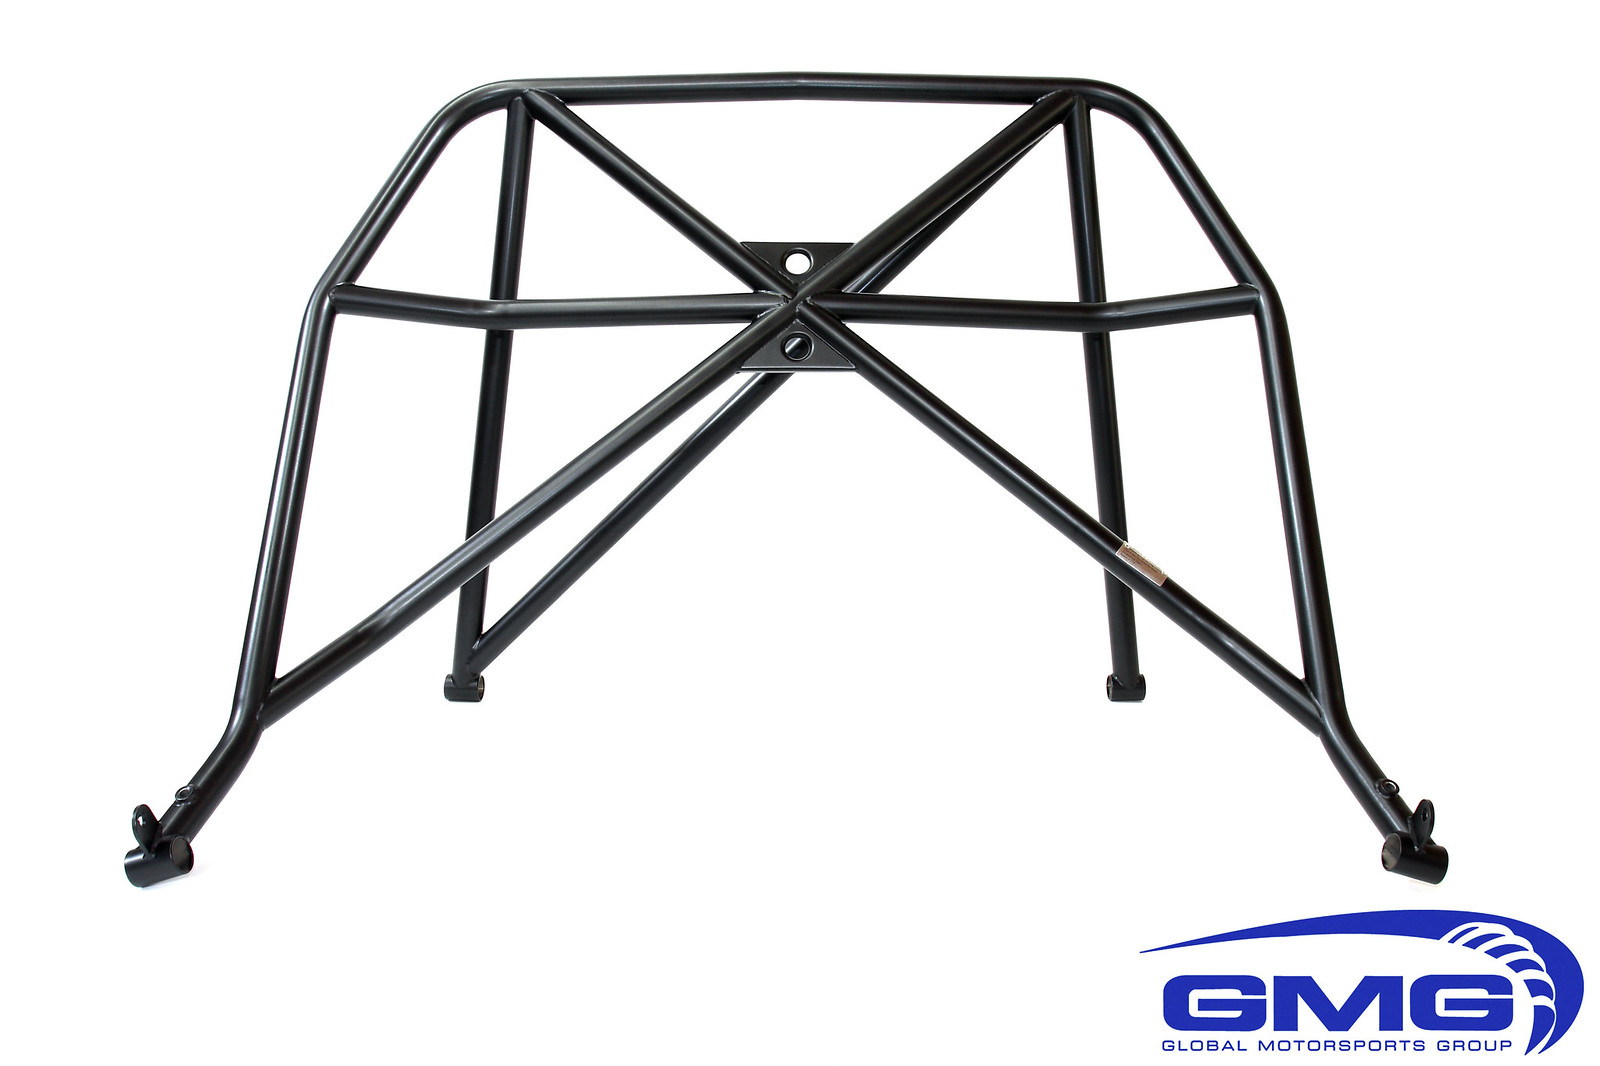 Gmg Racing Wc Roll Bar For Porsche 996 997 Gt2 Gt3 Now In